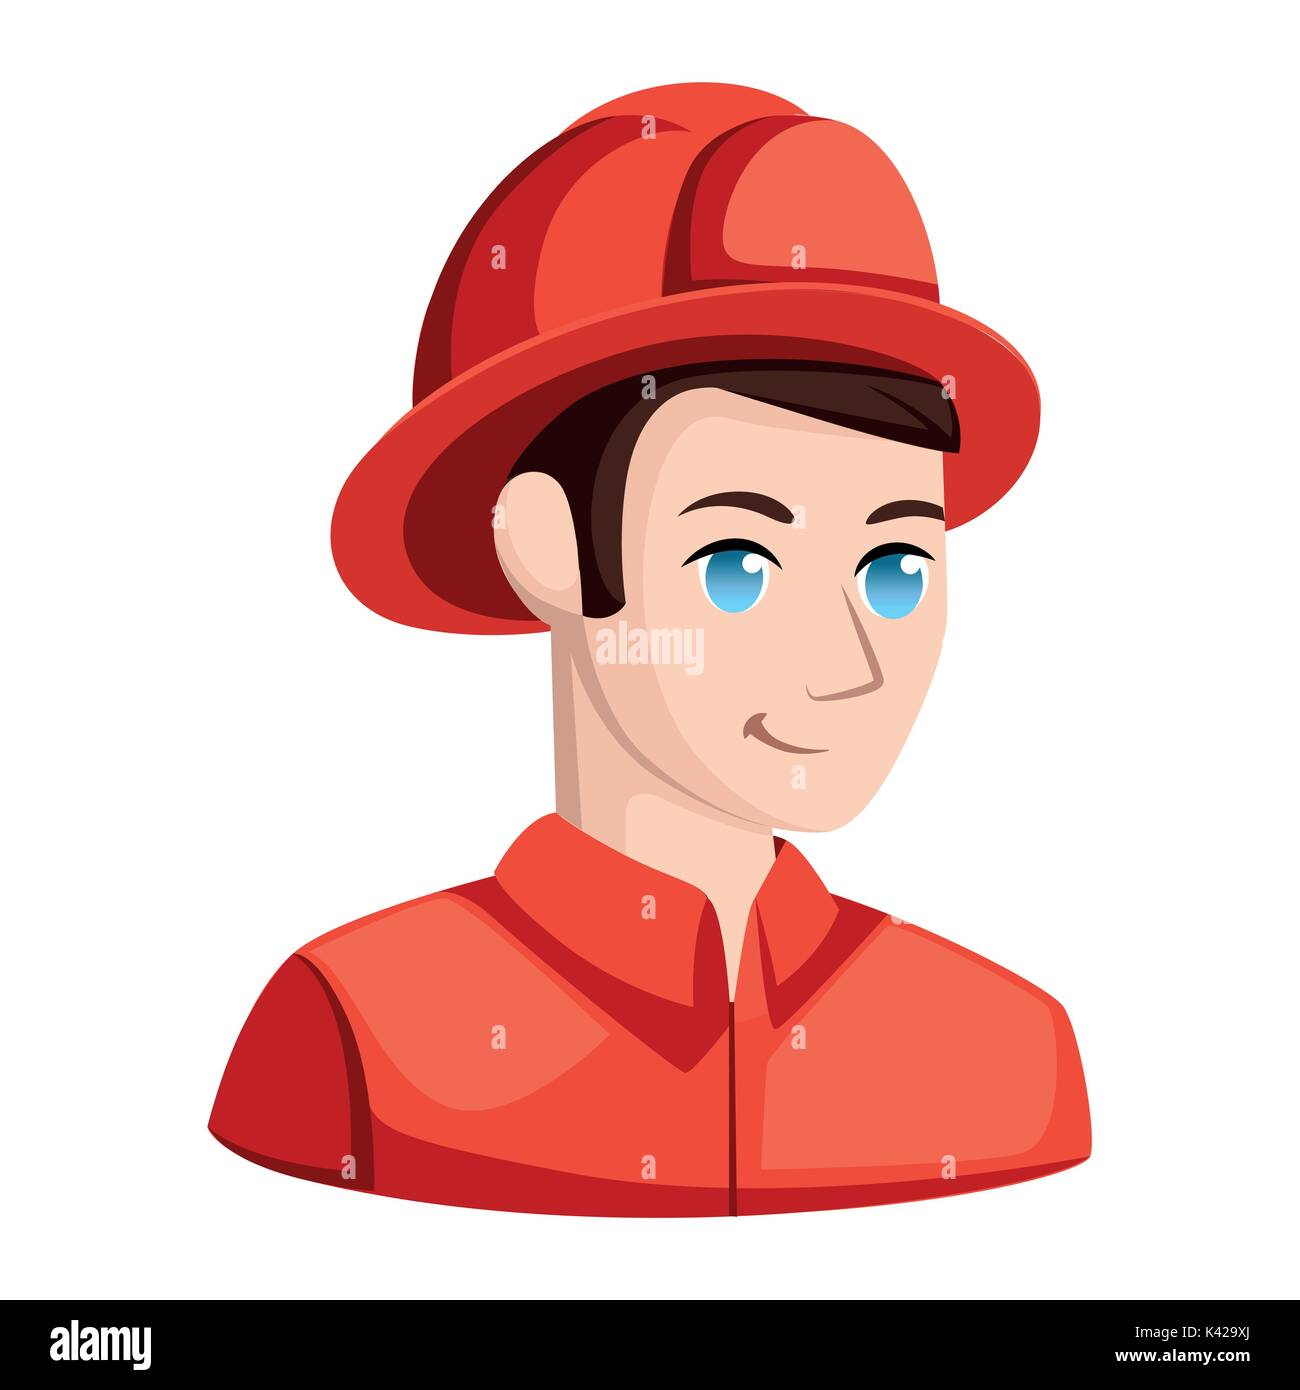 Fireman in helmet near hydrant spraying water. Rescue man in uniform and helmet at front of town or city. Person with extinguisher, hero character wit - Stock Image